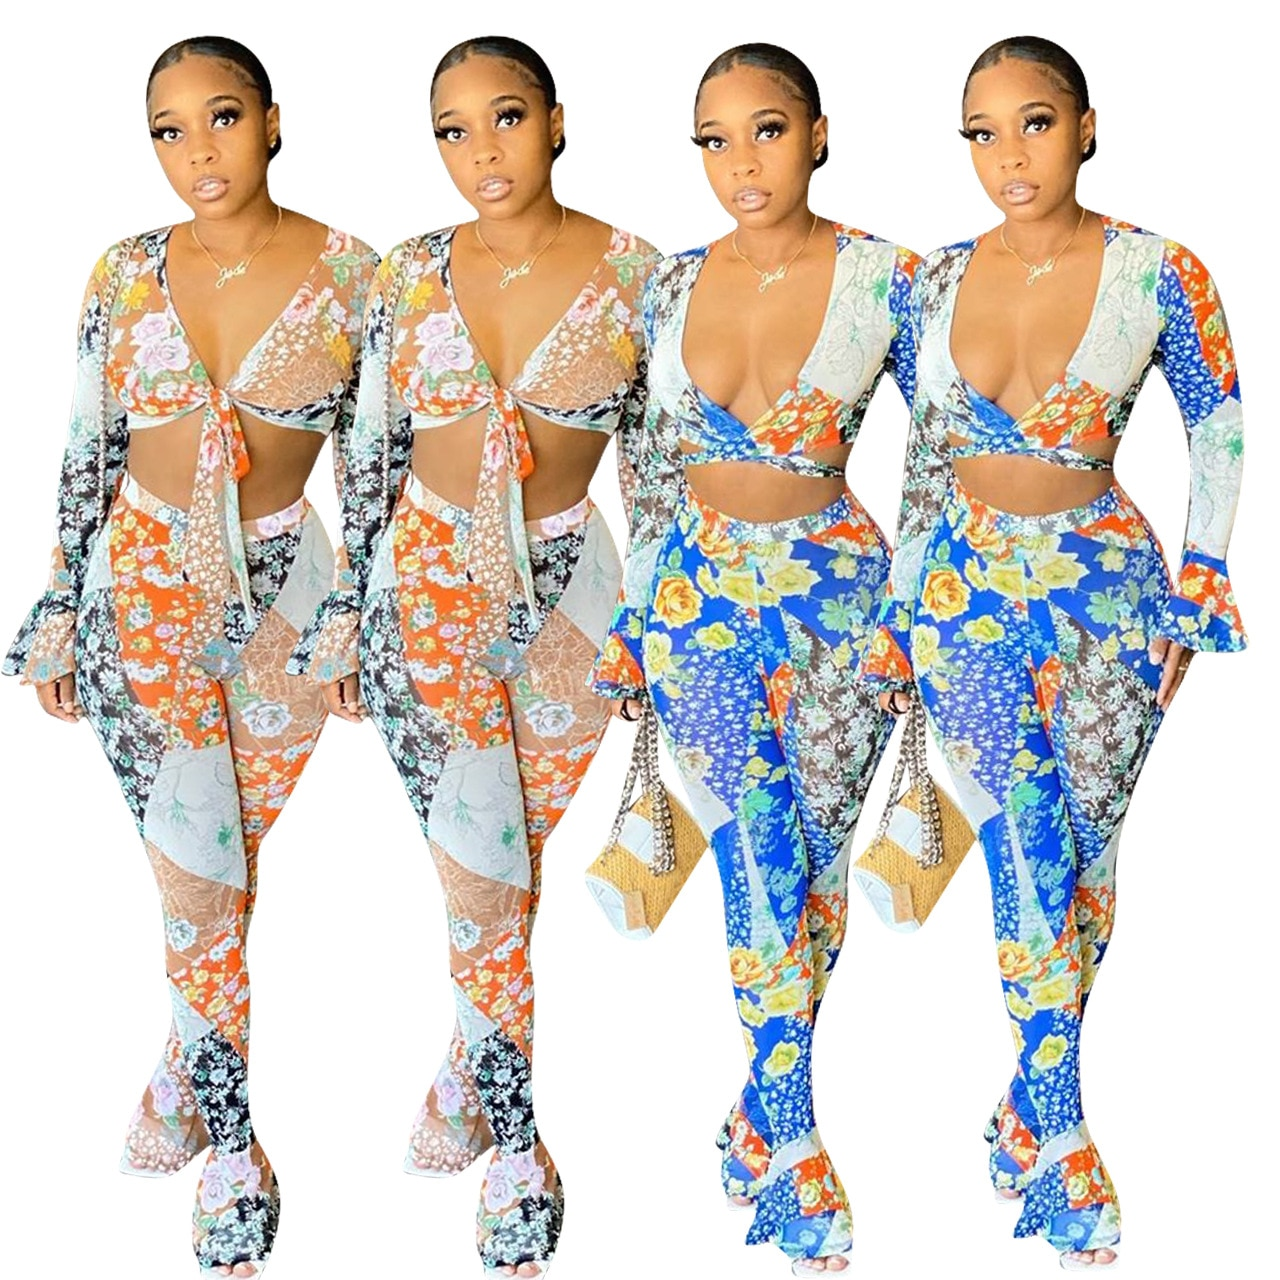 pink floral print scoop neck self tie design two piece outfit 2020 Summer Women Suit Hot Style Patchwork Floral Print Long Petal Sleeves V-neck Tie Shirt & Trousers Two Piece Set